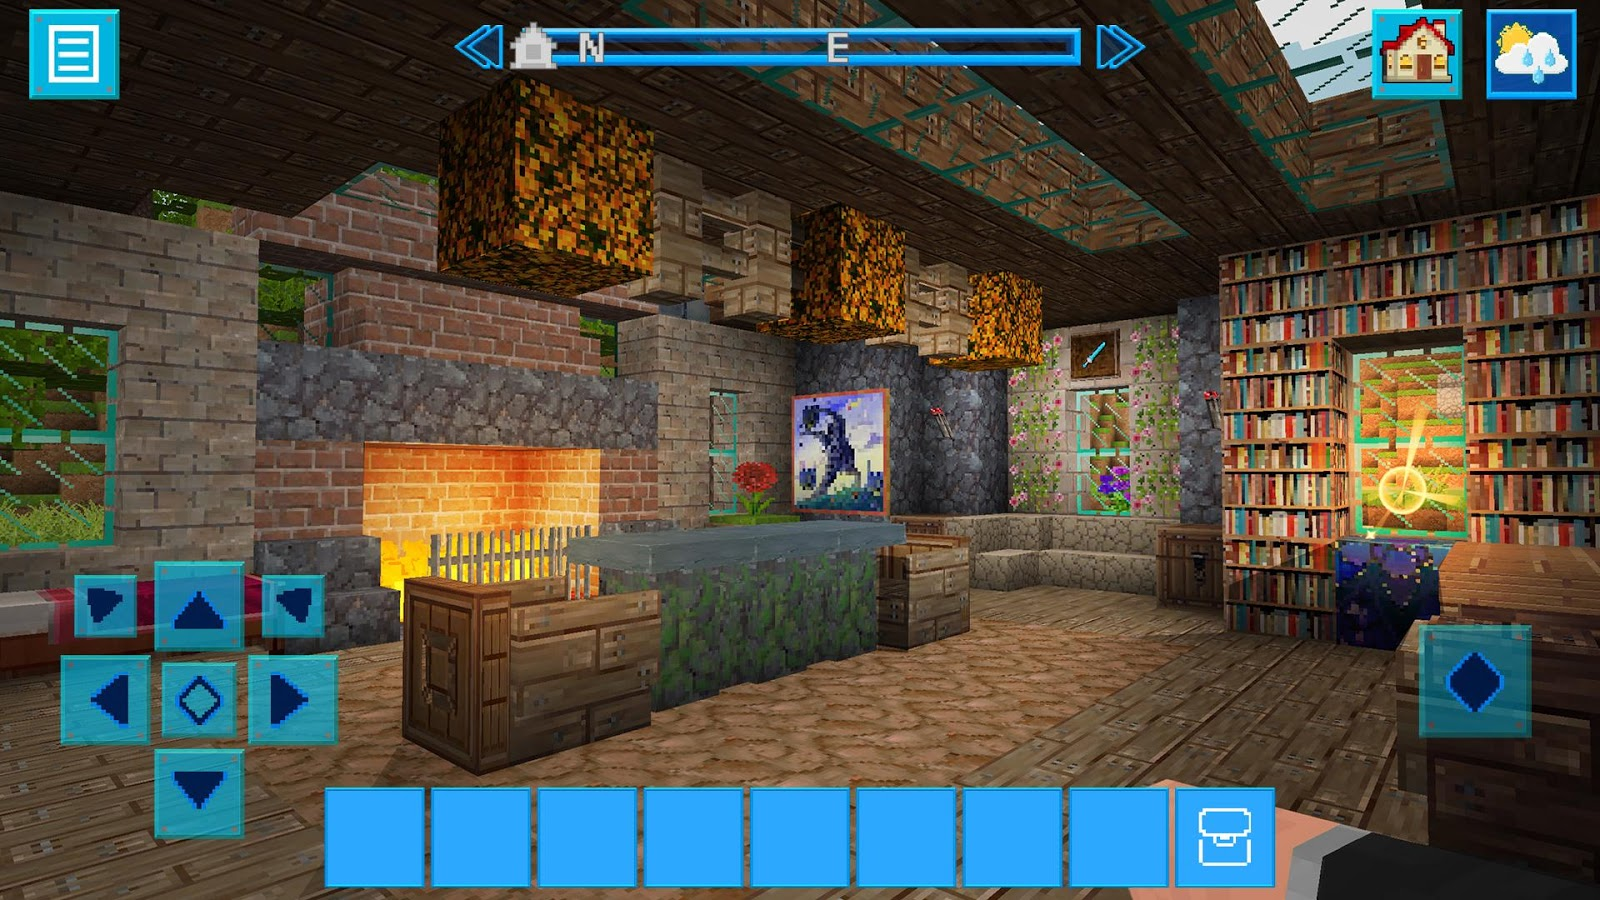 Earthcraft 3d block craft world exploration android for Block craft 3d games